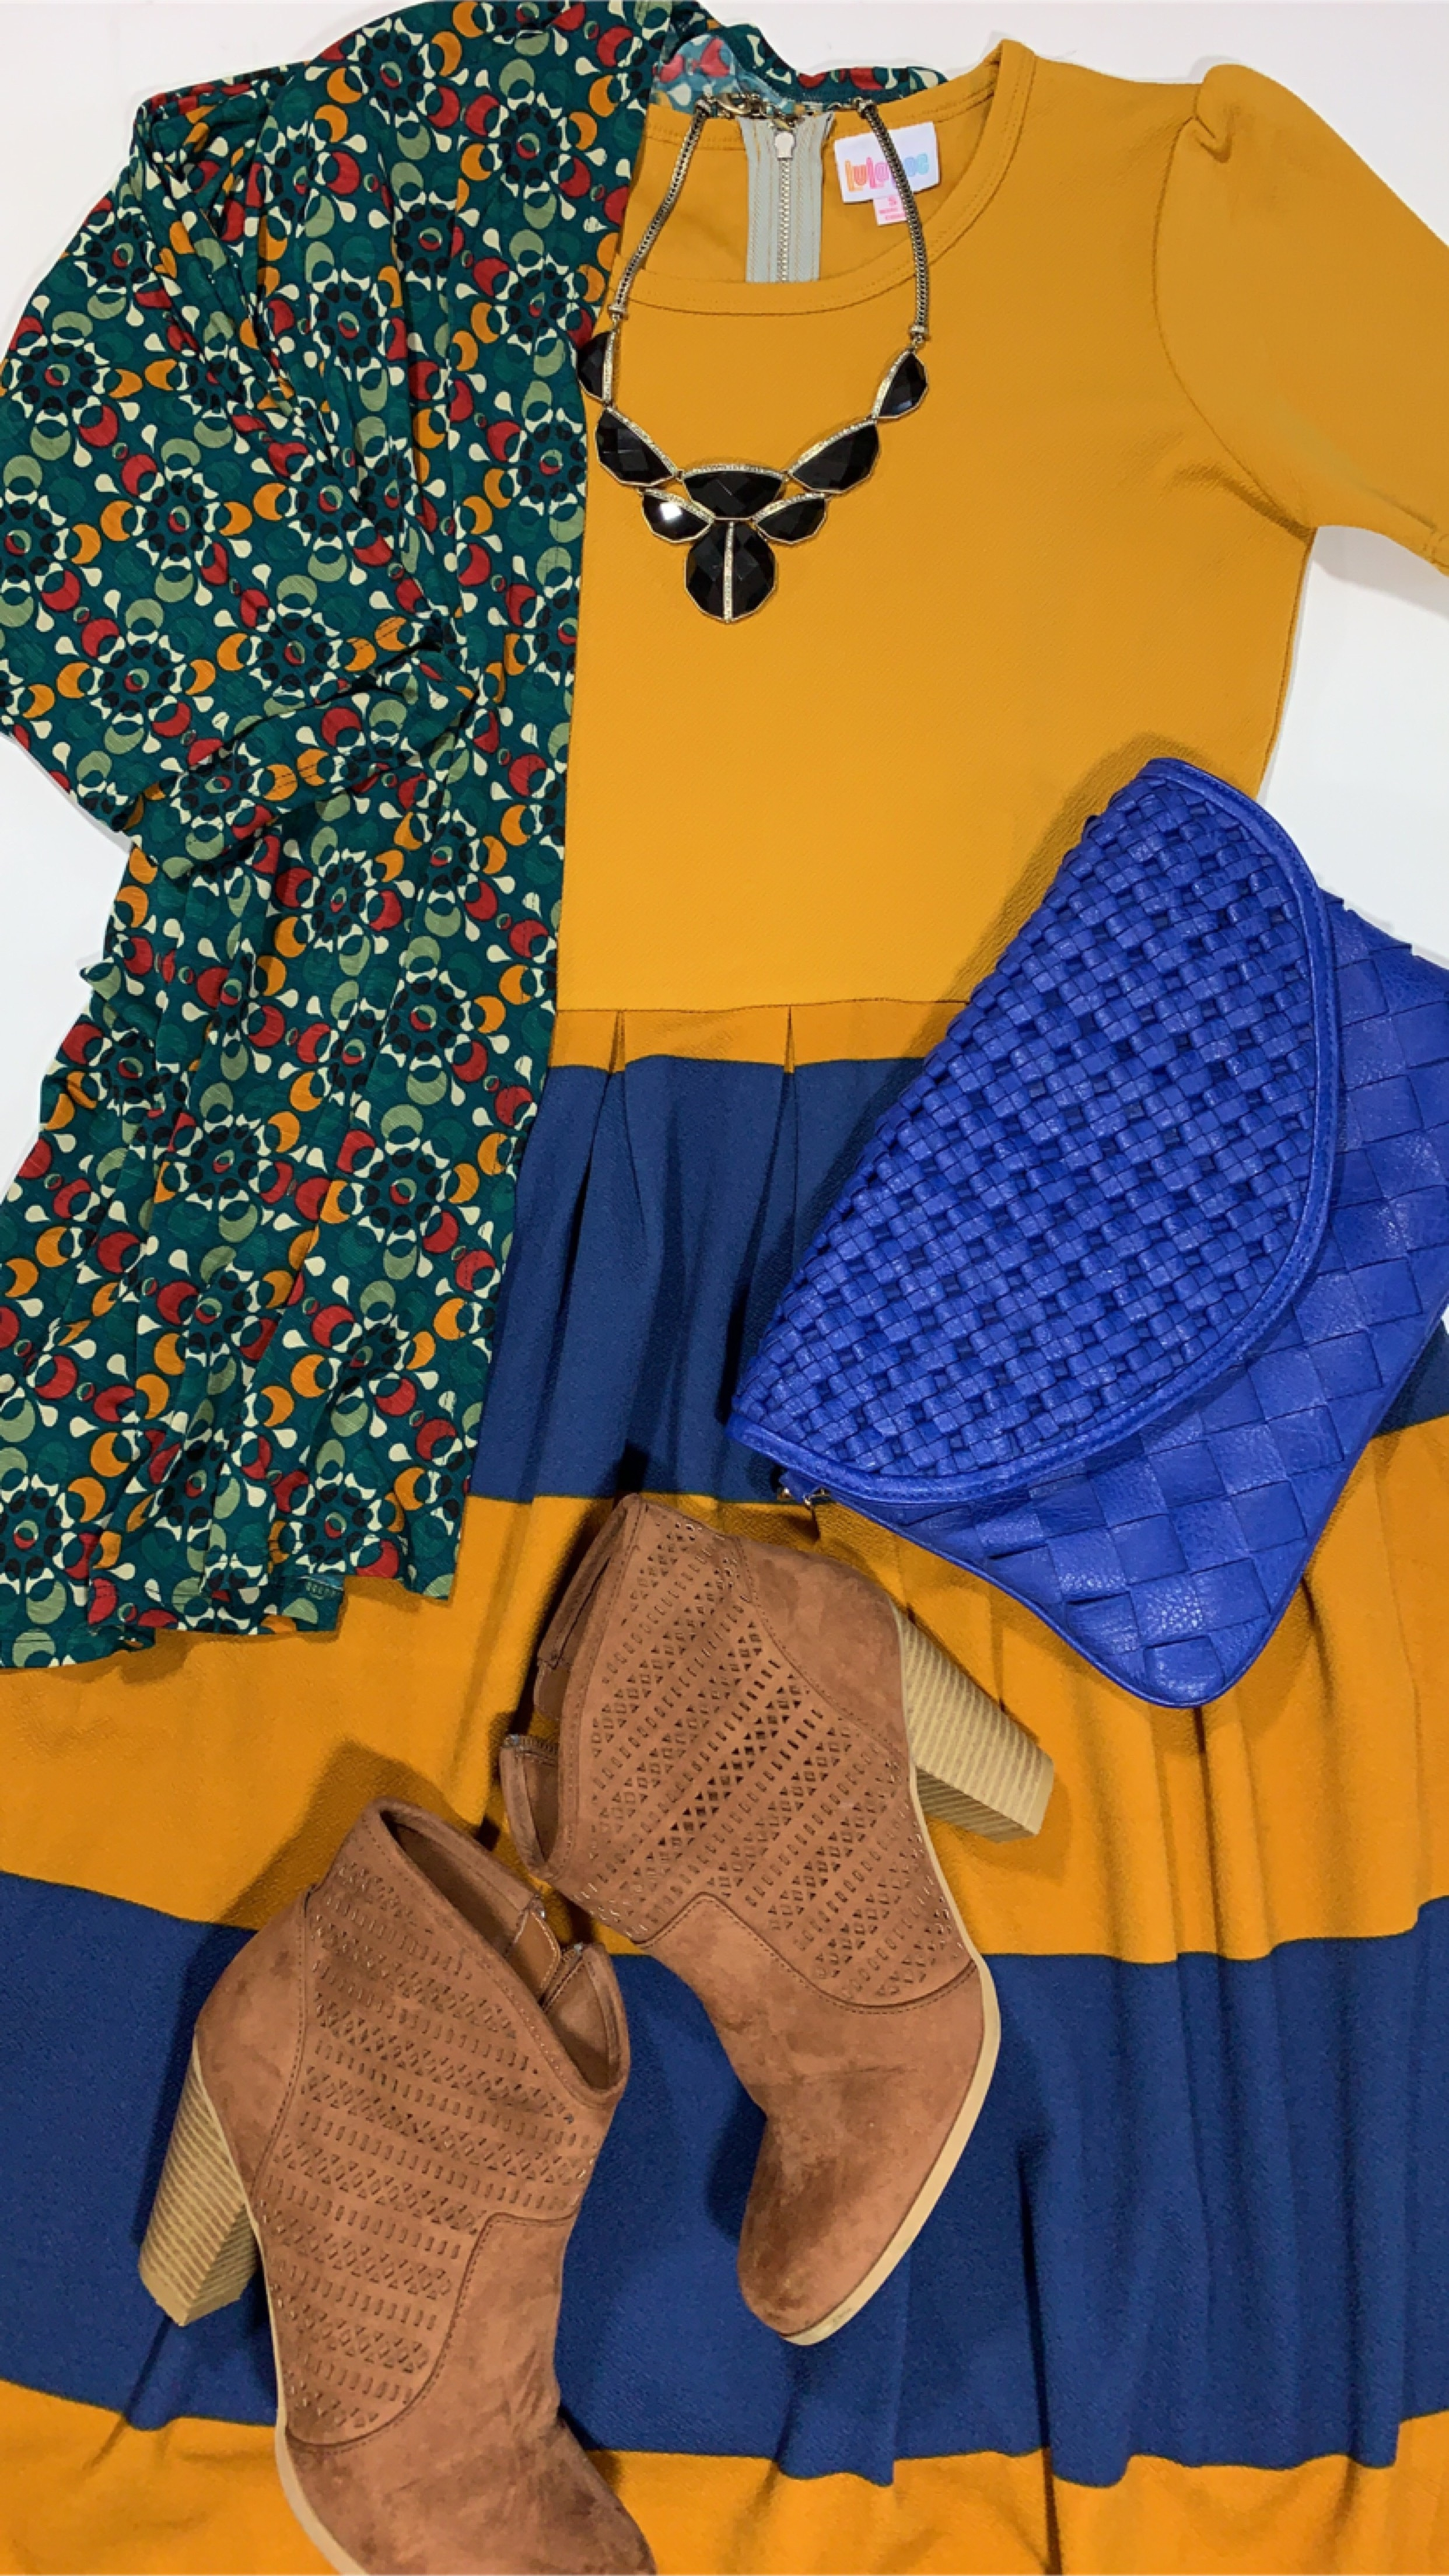 - The complete look! Pattern mix perfection!